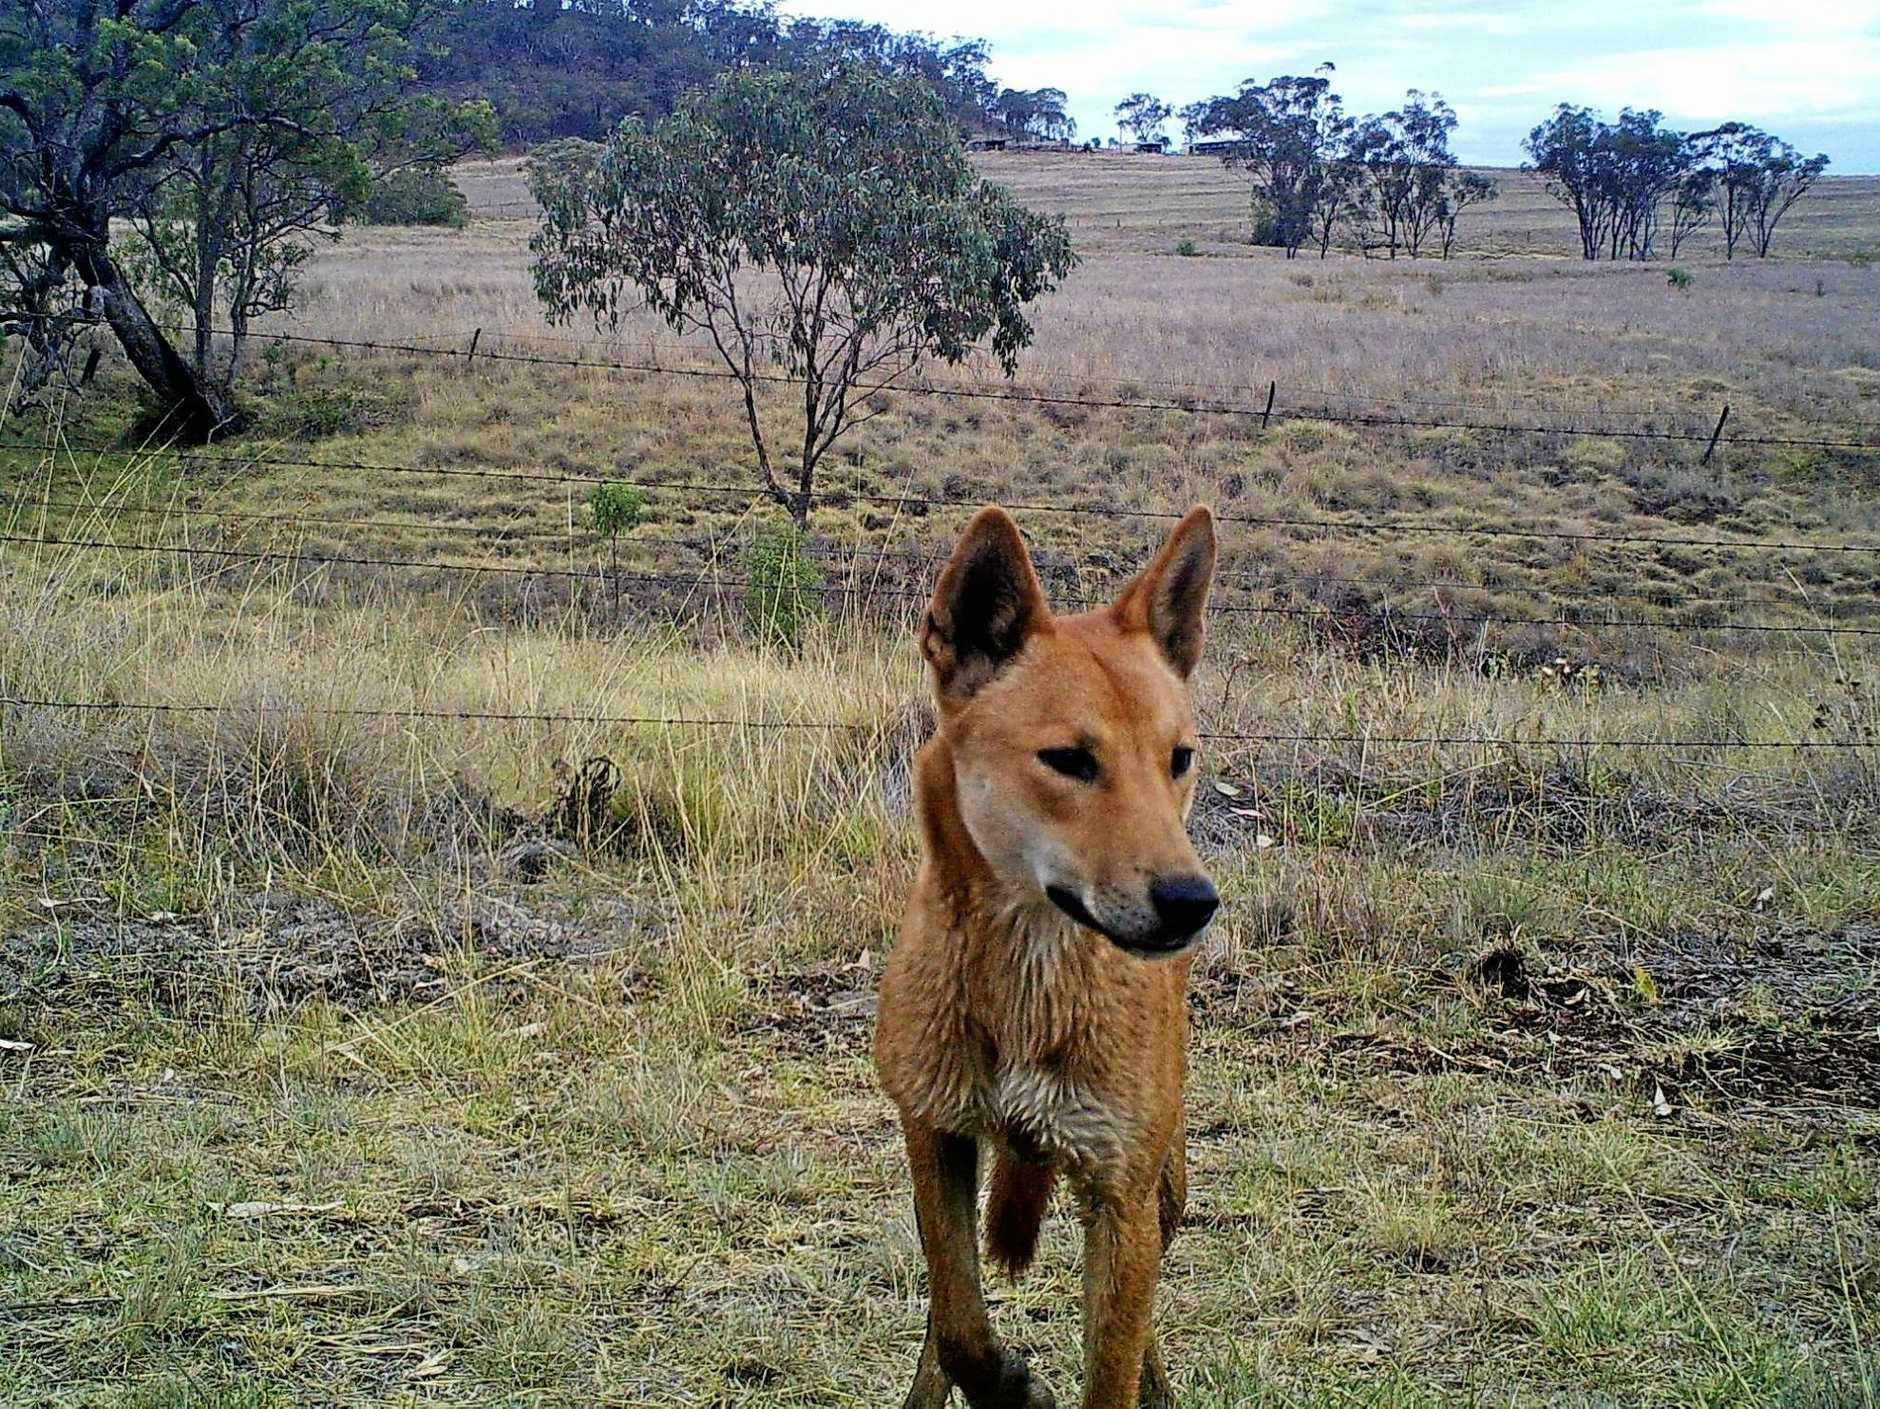 ON THE LOOSE: A wild dog captured on camera by professional feral animal killer Tony Hopkins